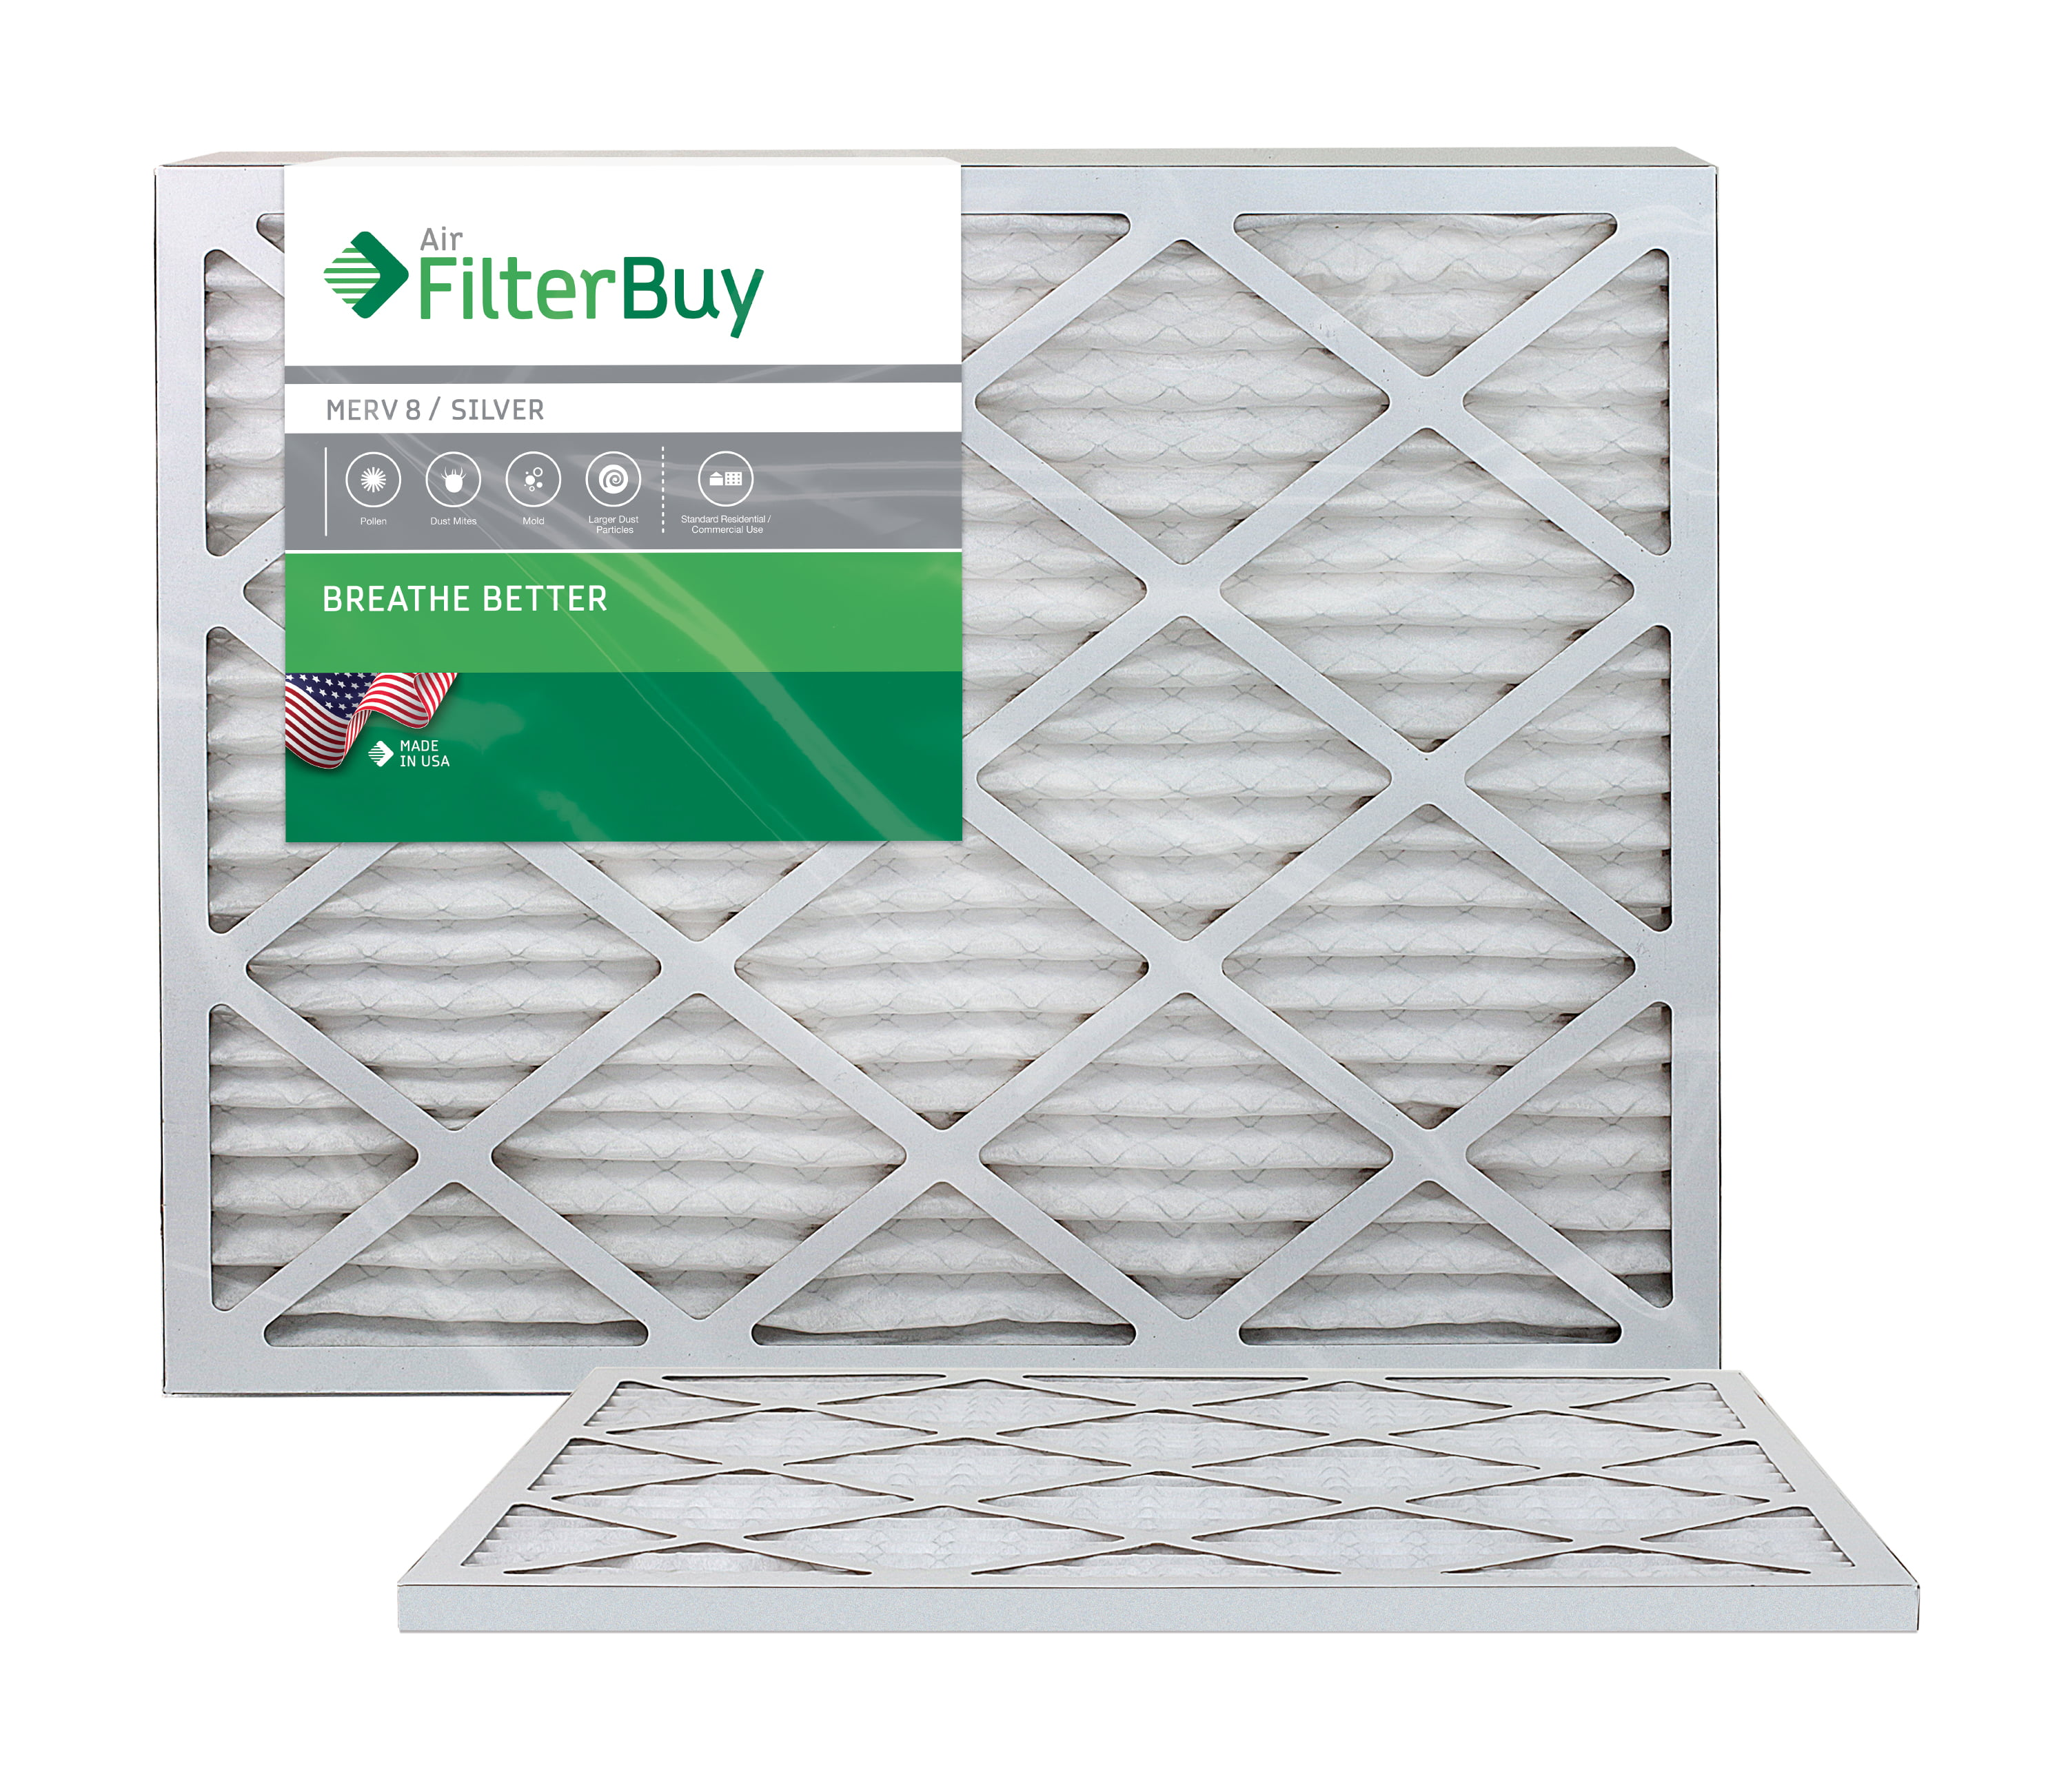 Gold Pack of 4 Filters FilterBuy 20x22x1 MERV 11 Pleated AC Furnace Air Filter, 20x22x1